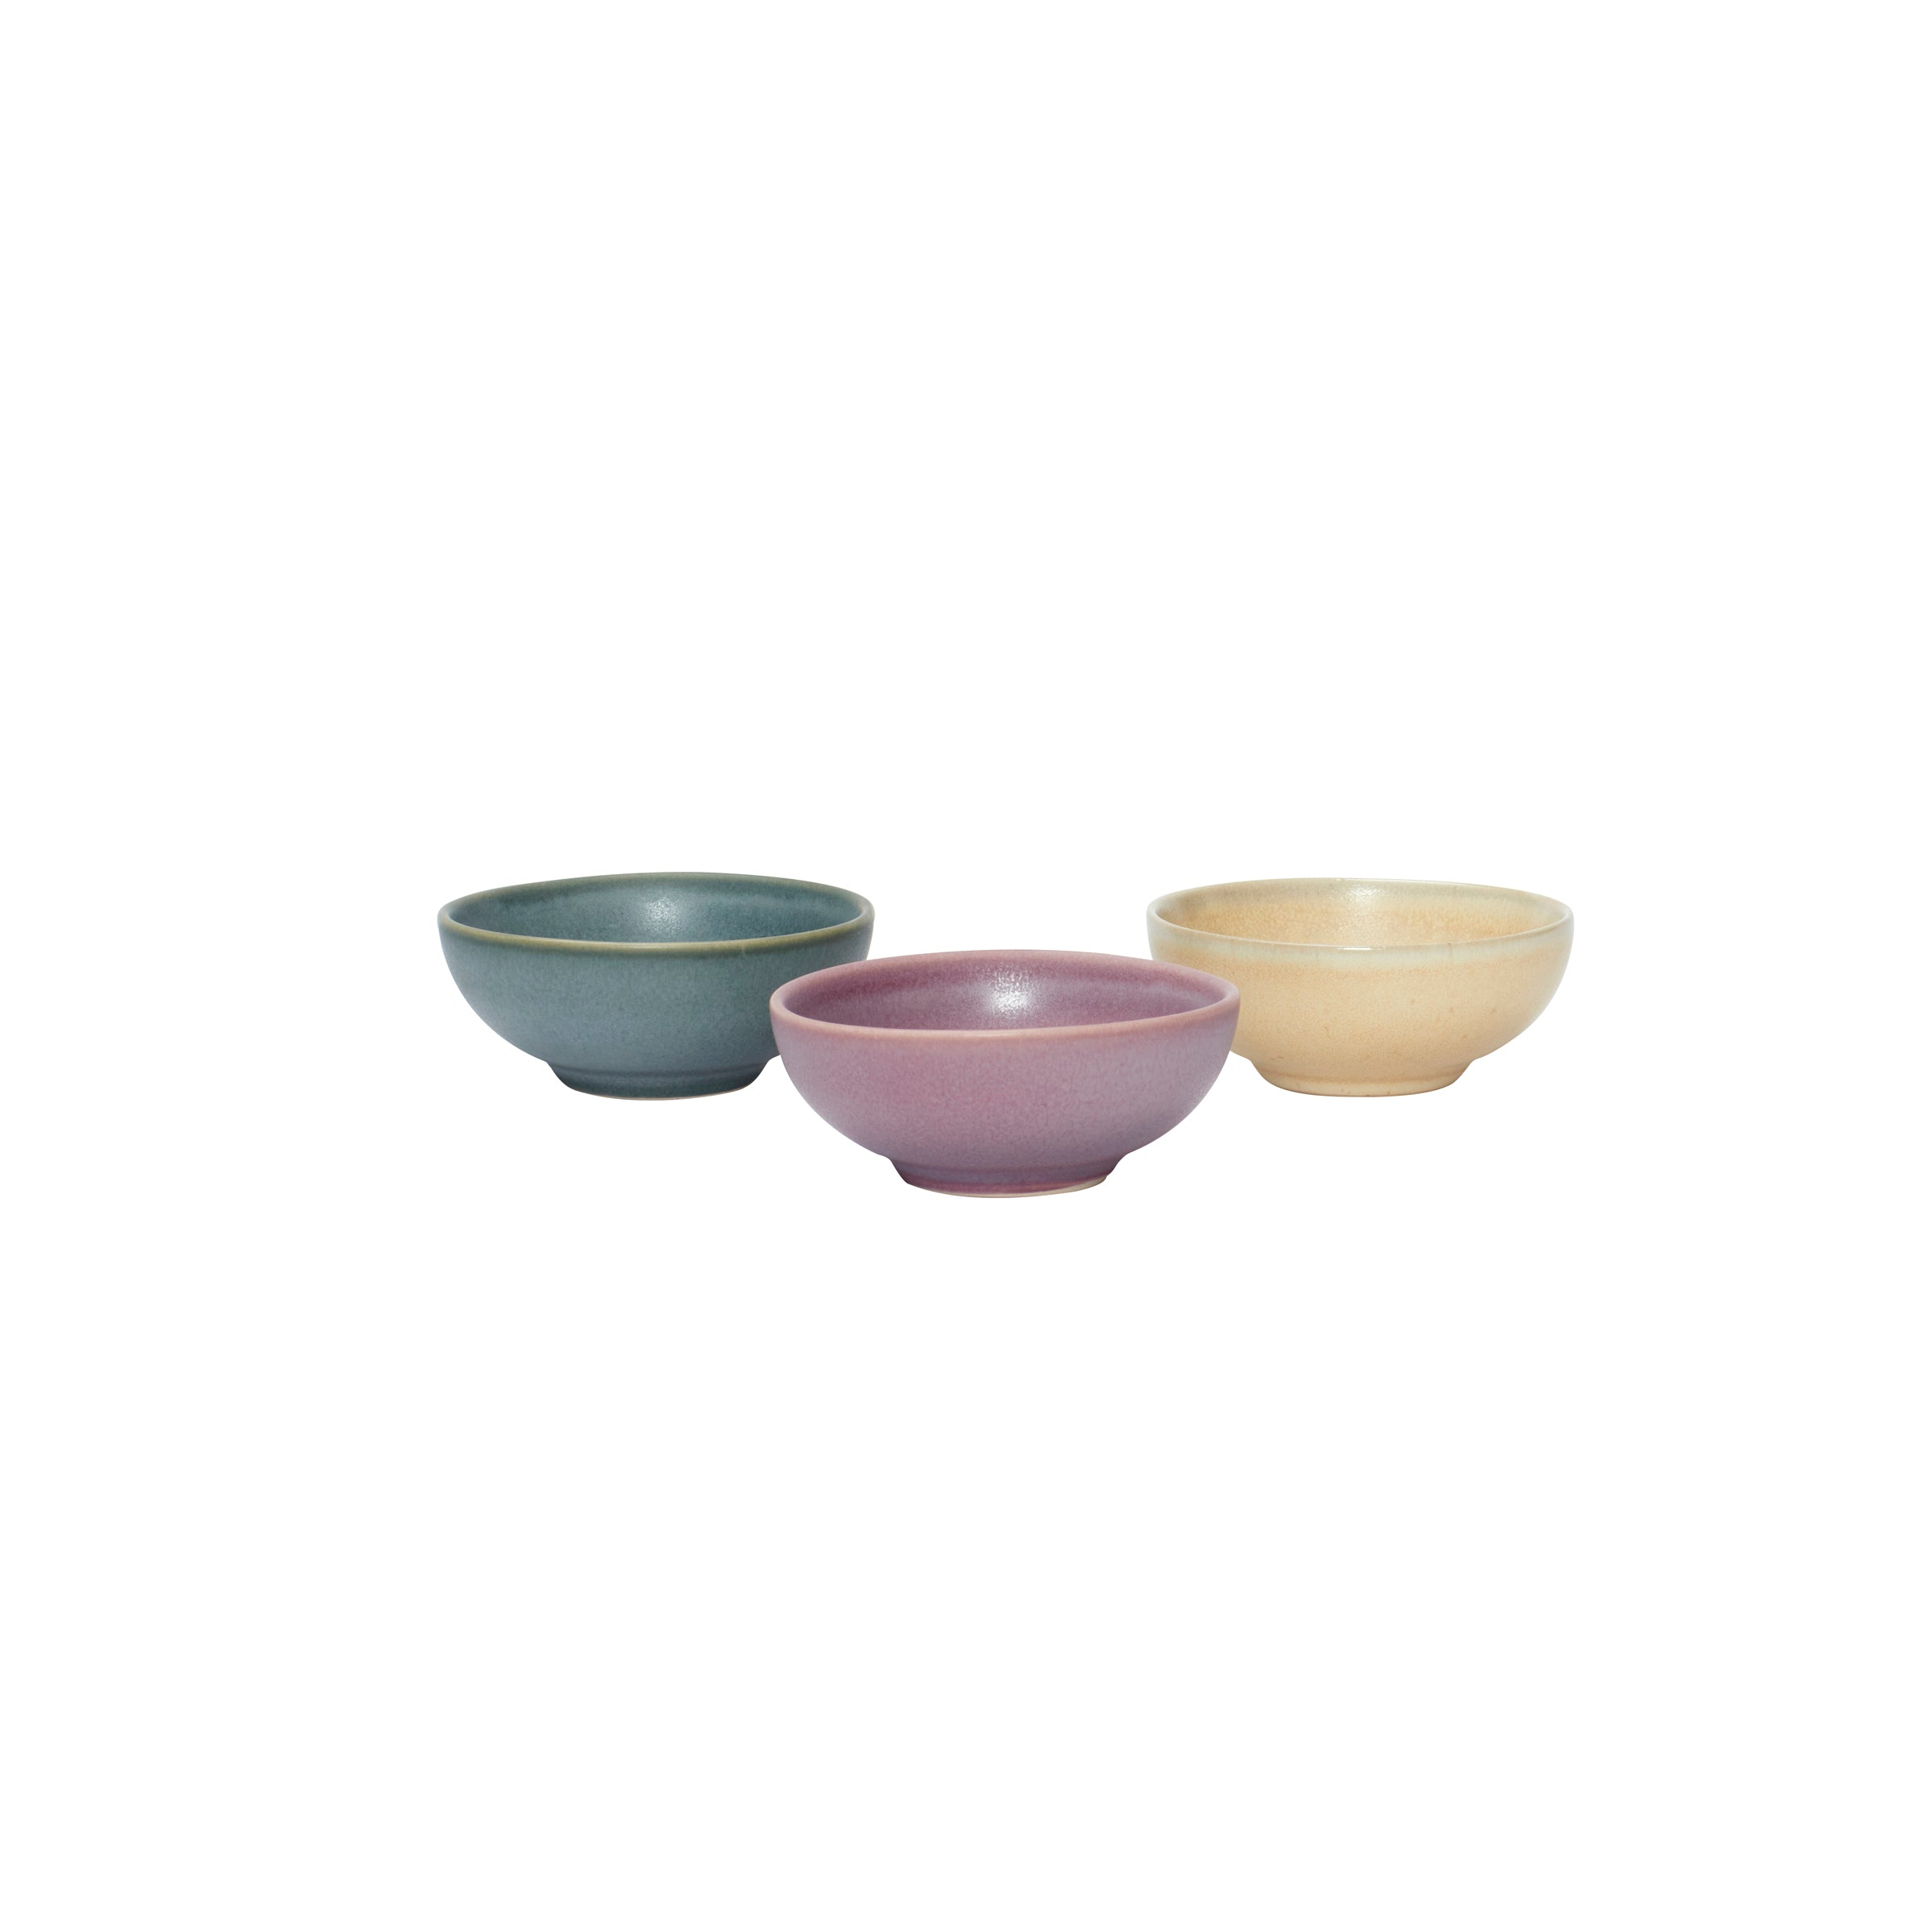 Set of 3 Small Ceramic Bowls - Sand, Purple, Green